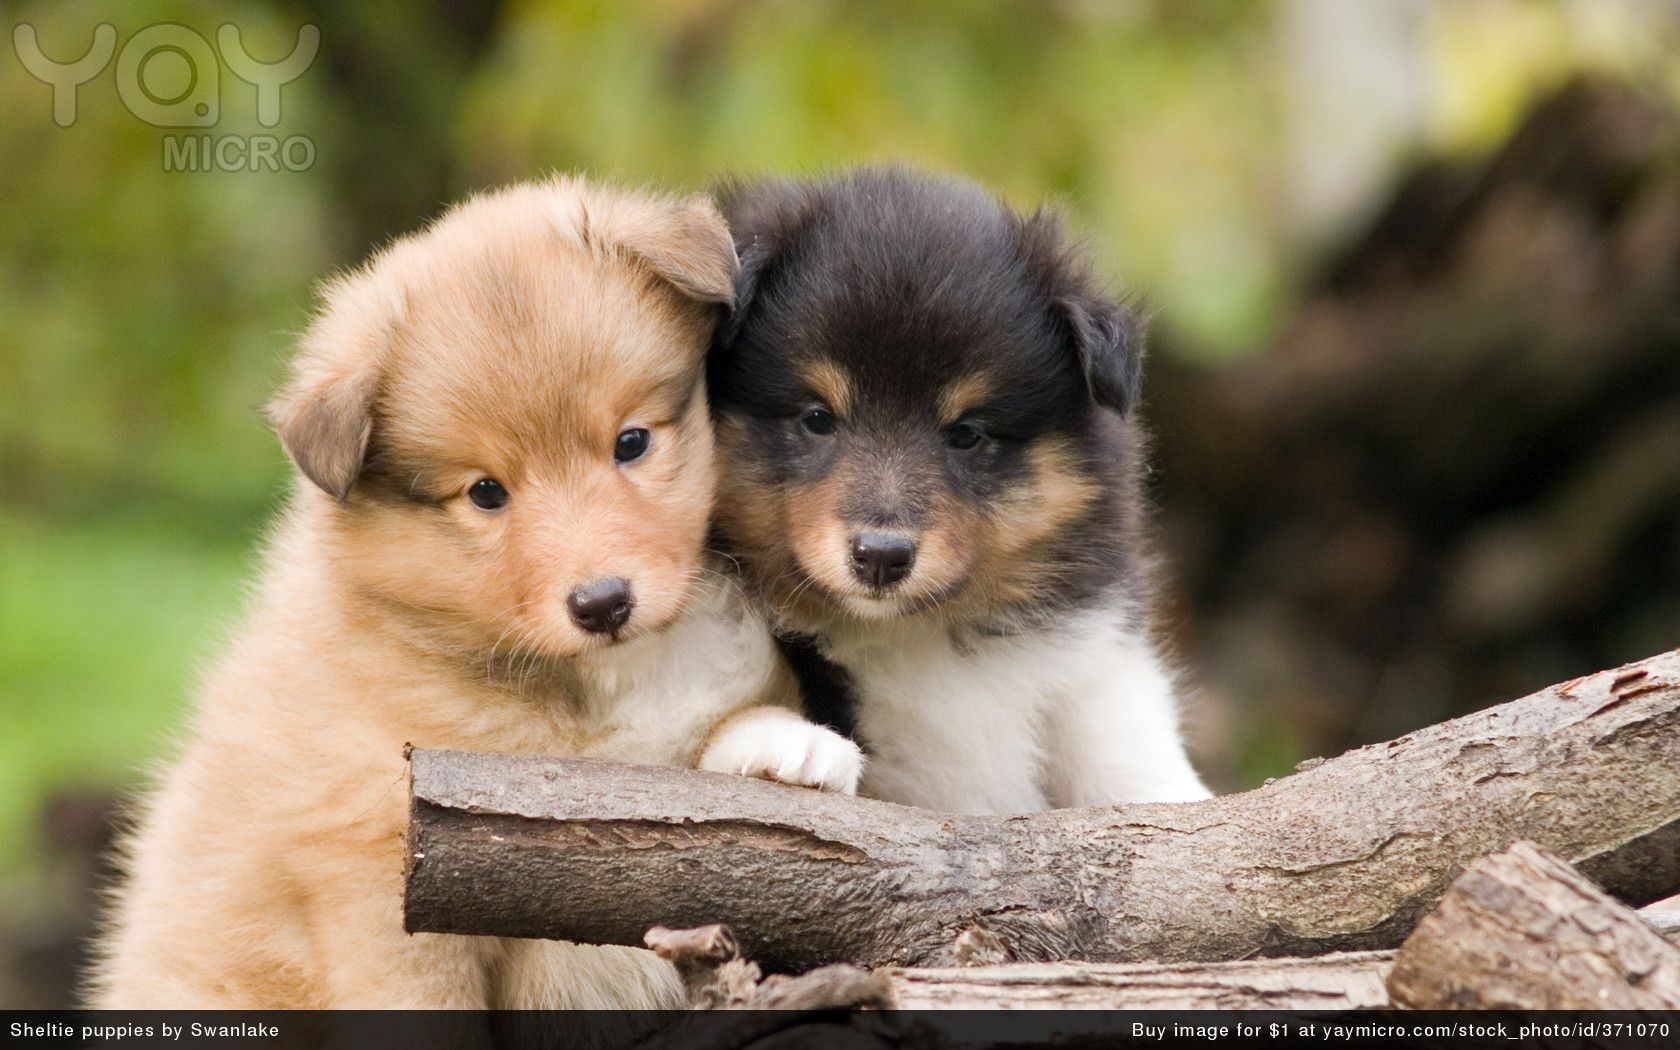 Cute Dogs And Puppies Wallpaper Cute Dogs And Puppies Backgrounds On